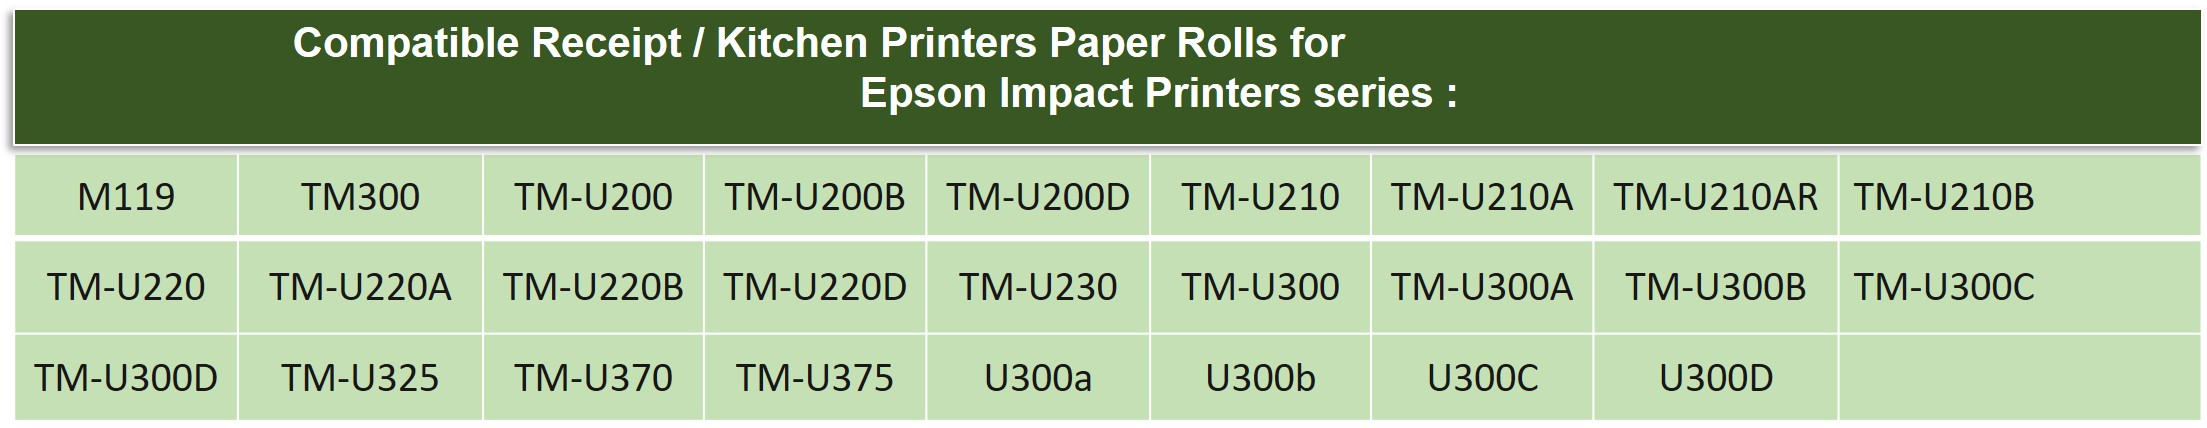 receipt-kitchen-printer-paper-for-epson-impact-printer-chart-ii.jpg